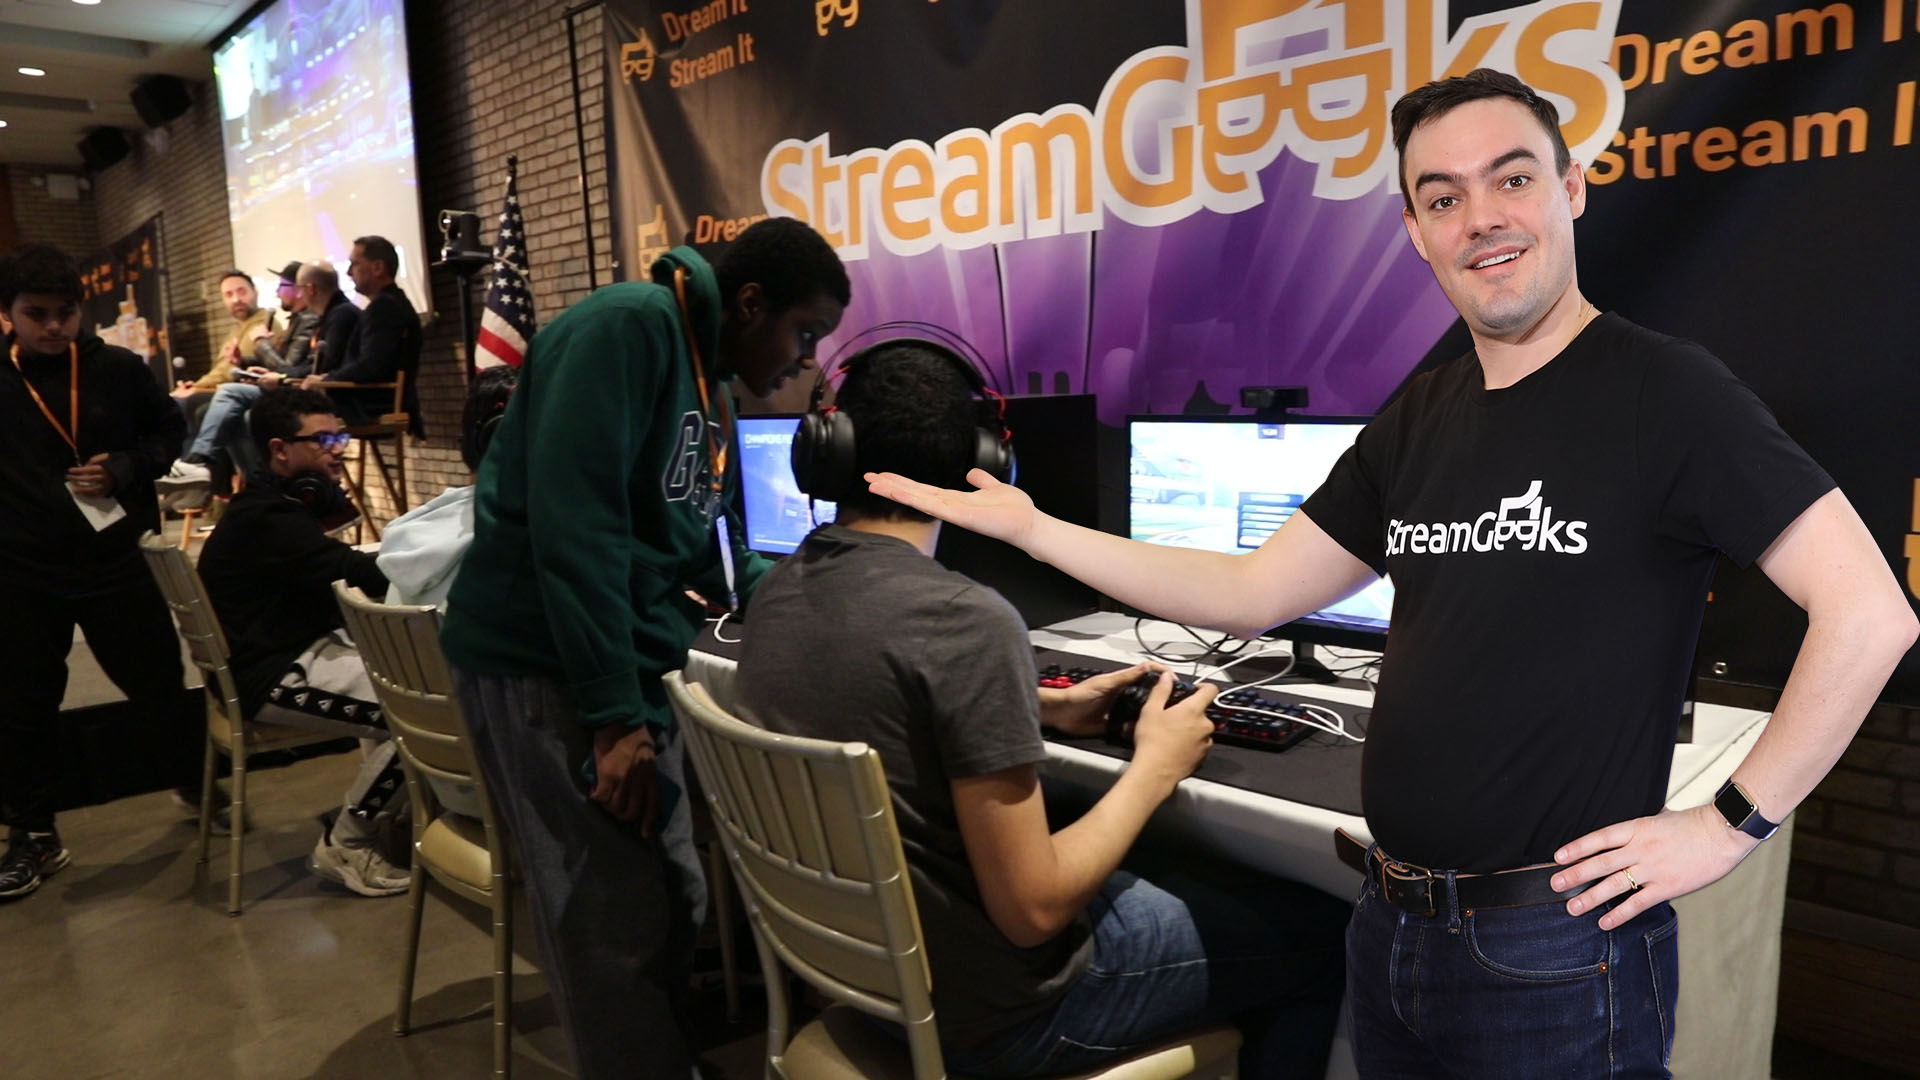 West Chester-Based 'StreamGeek' Pens Book That Explores Educational Value of Esports